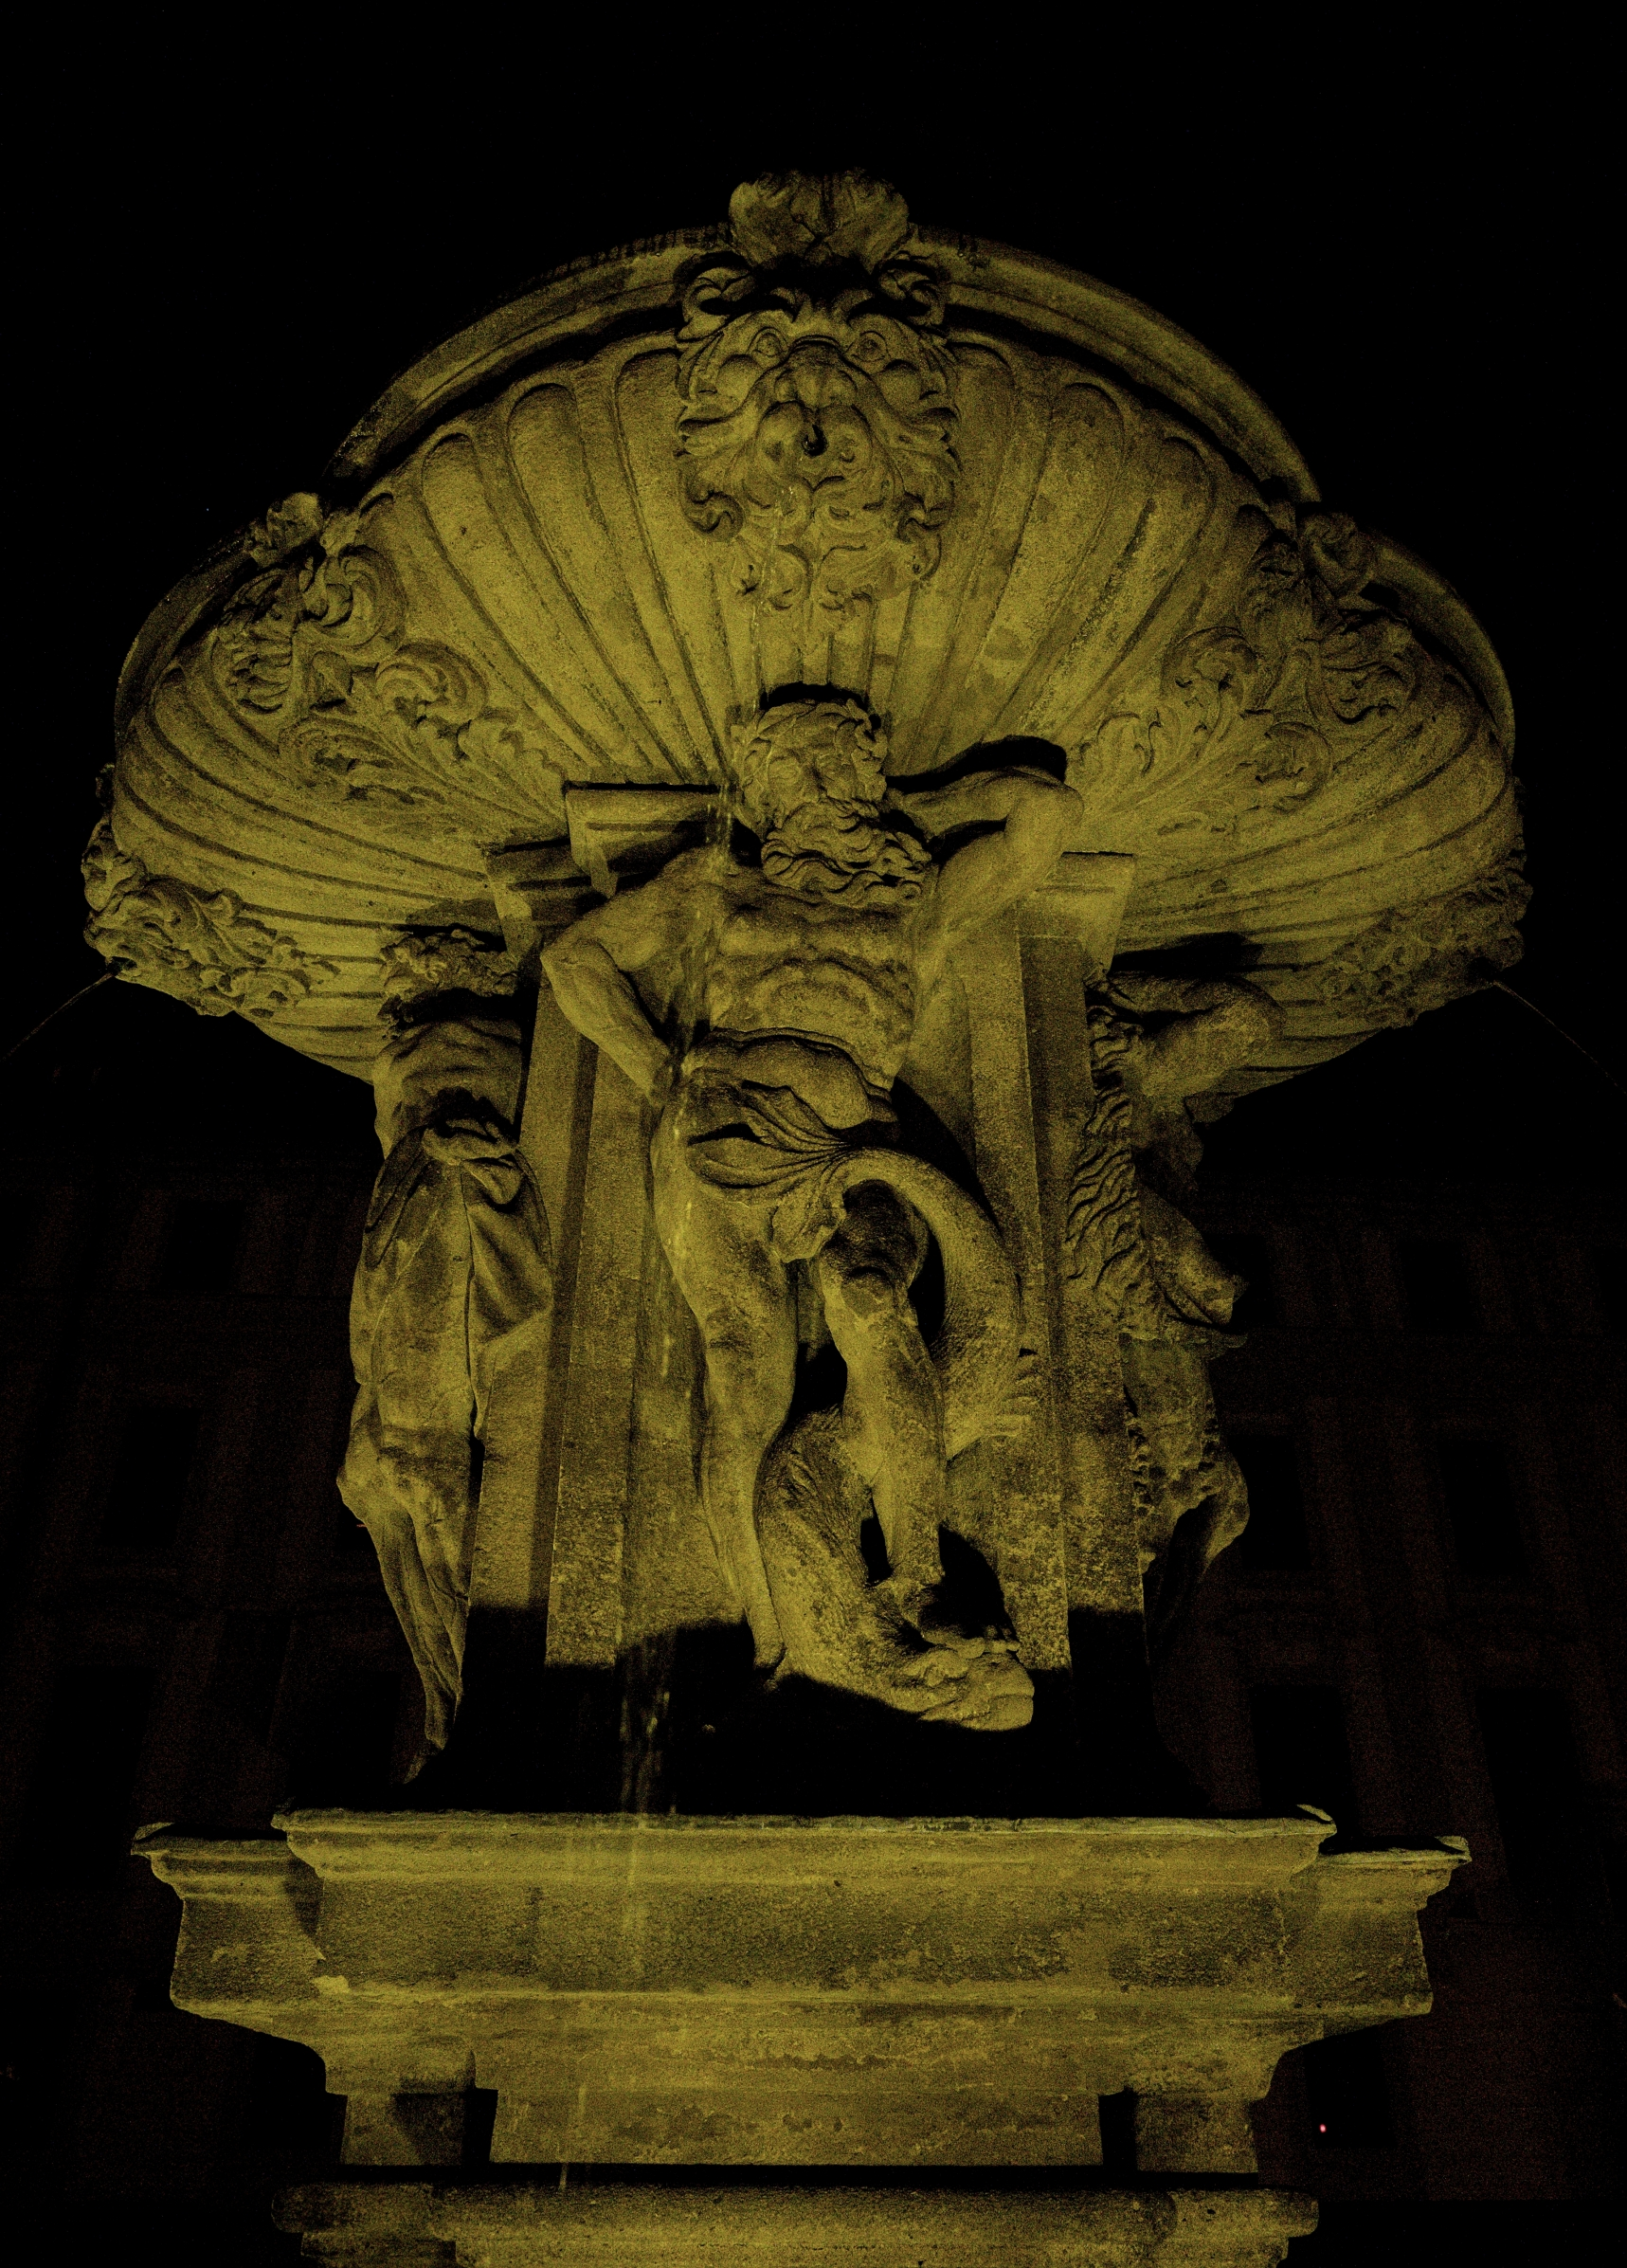 Kohl´s Fountain in detail